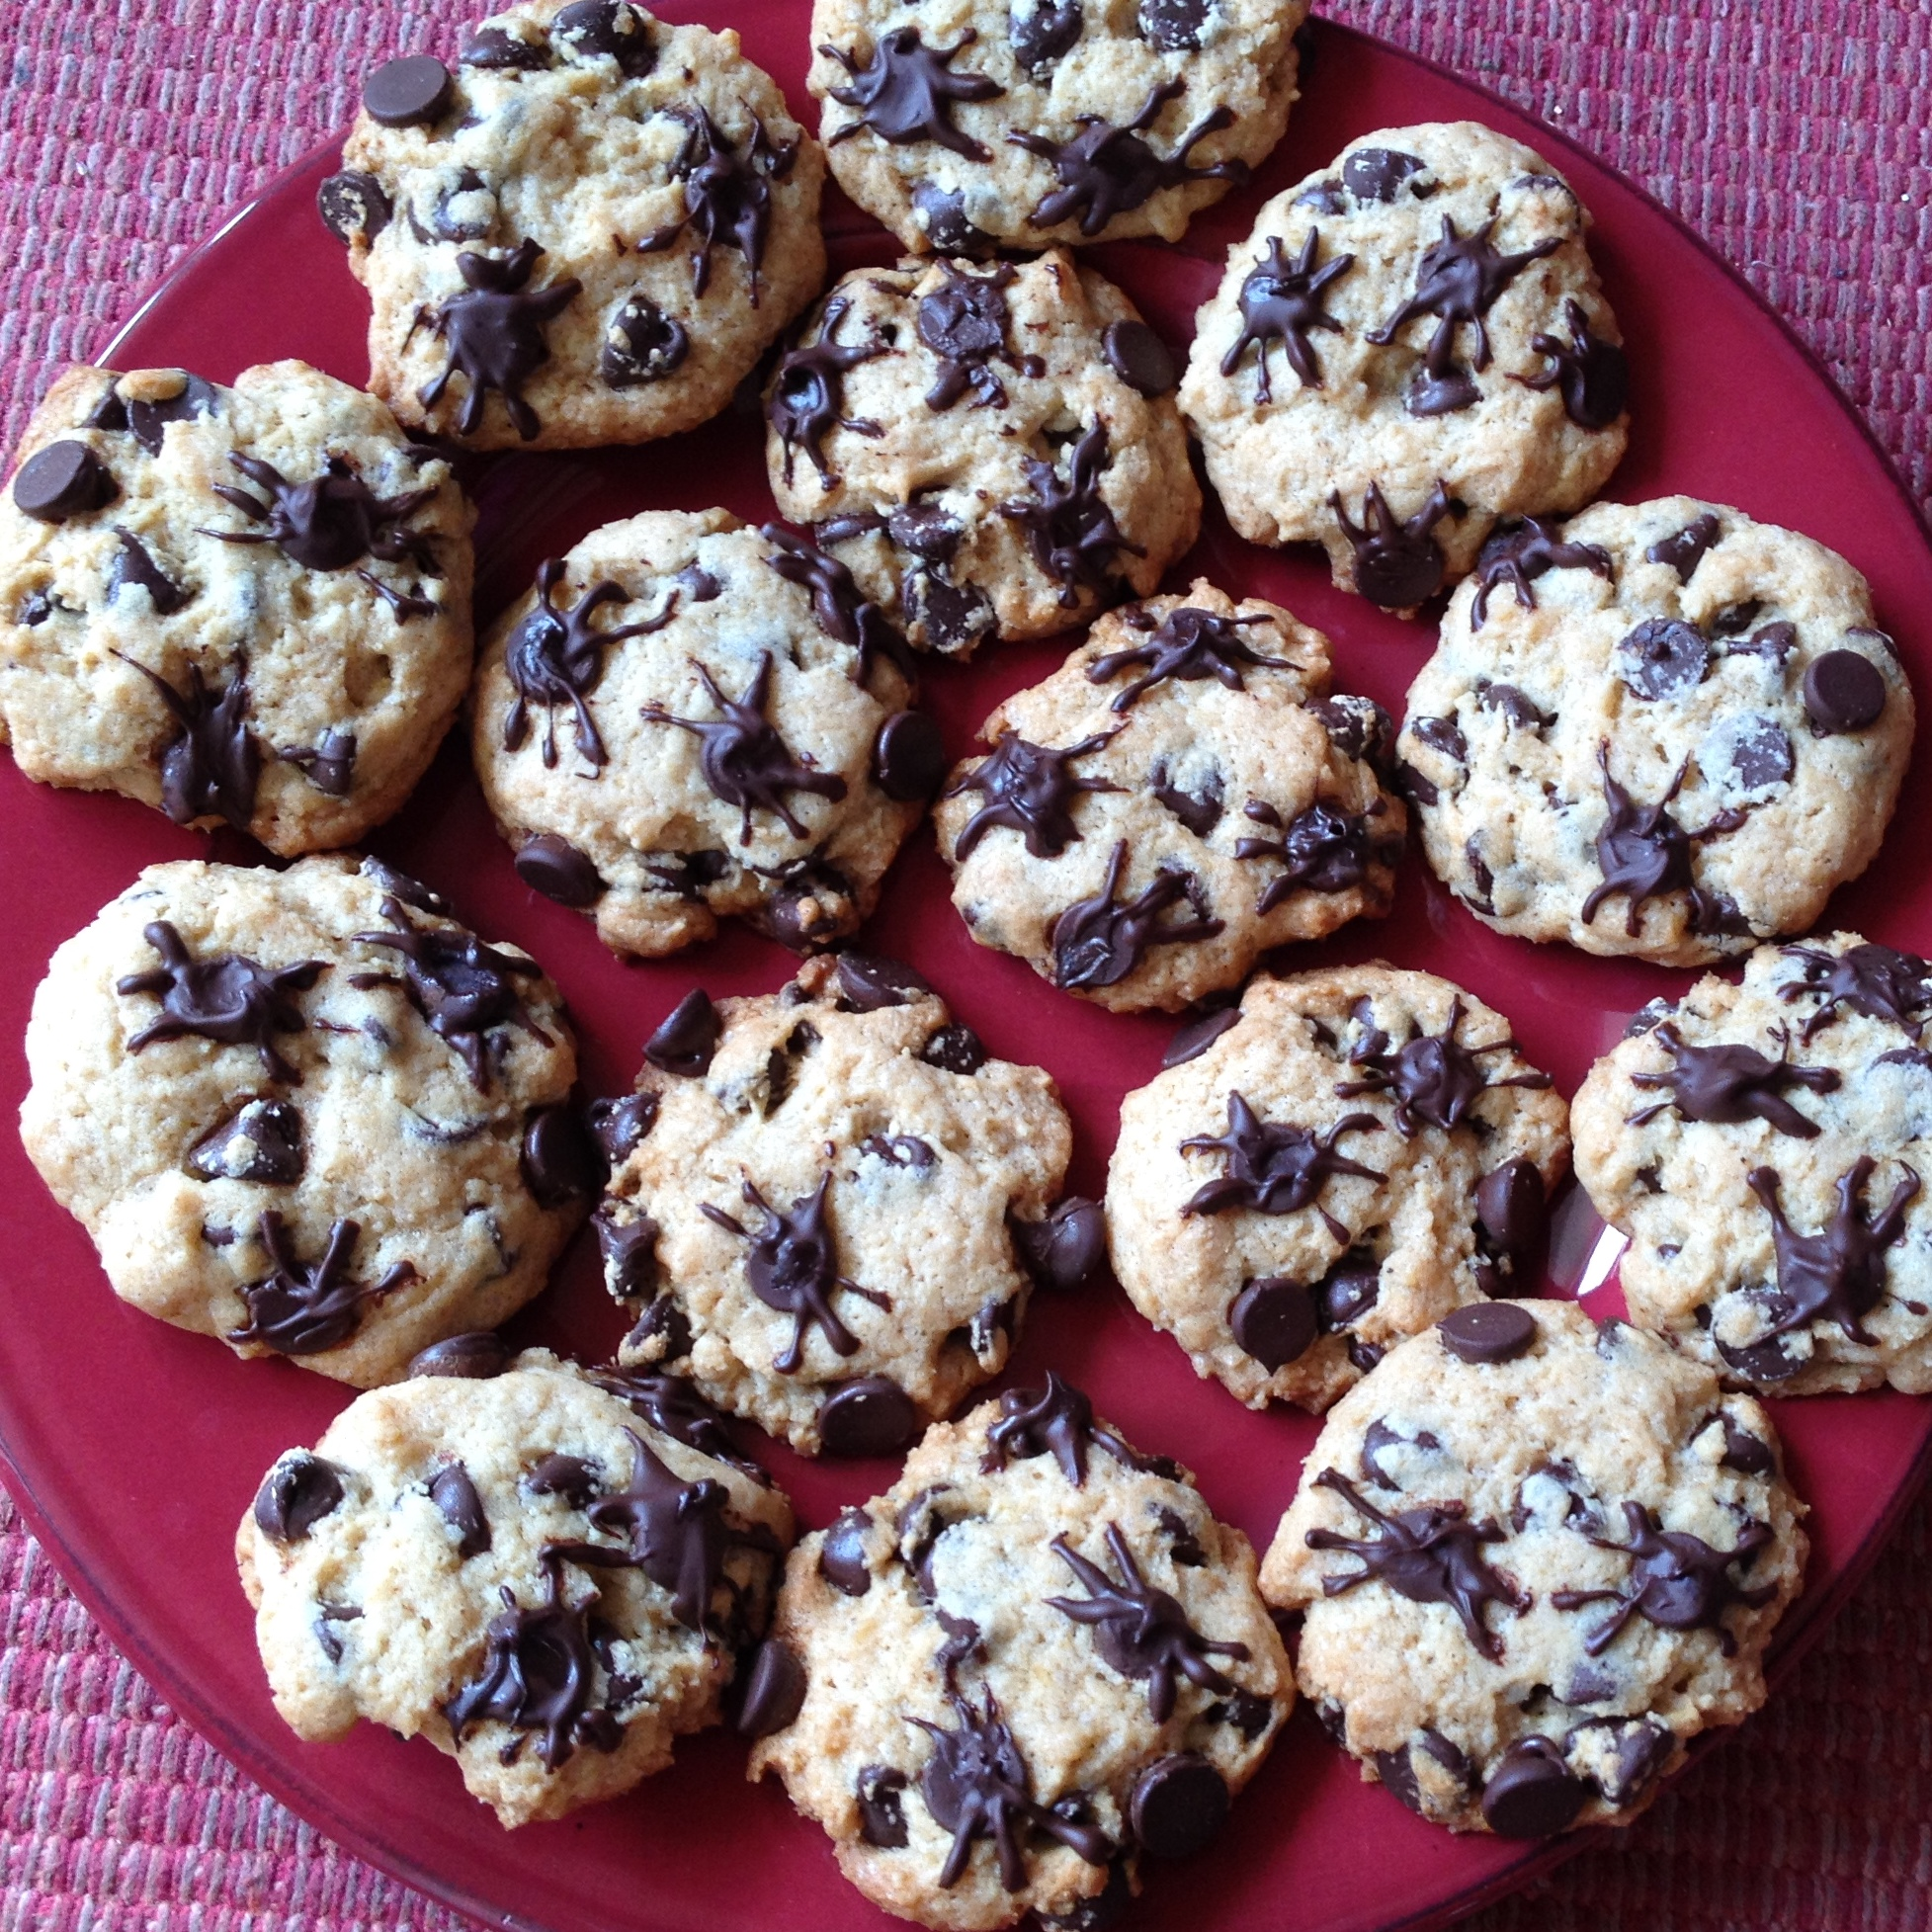 cookies with chocolate chips that look like spiders